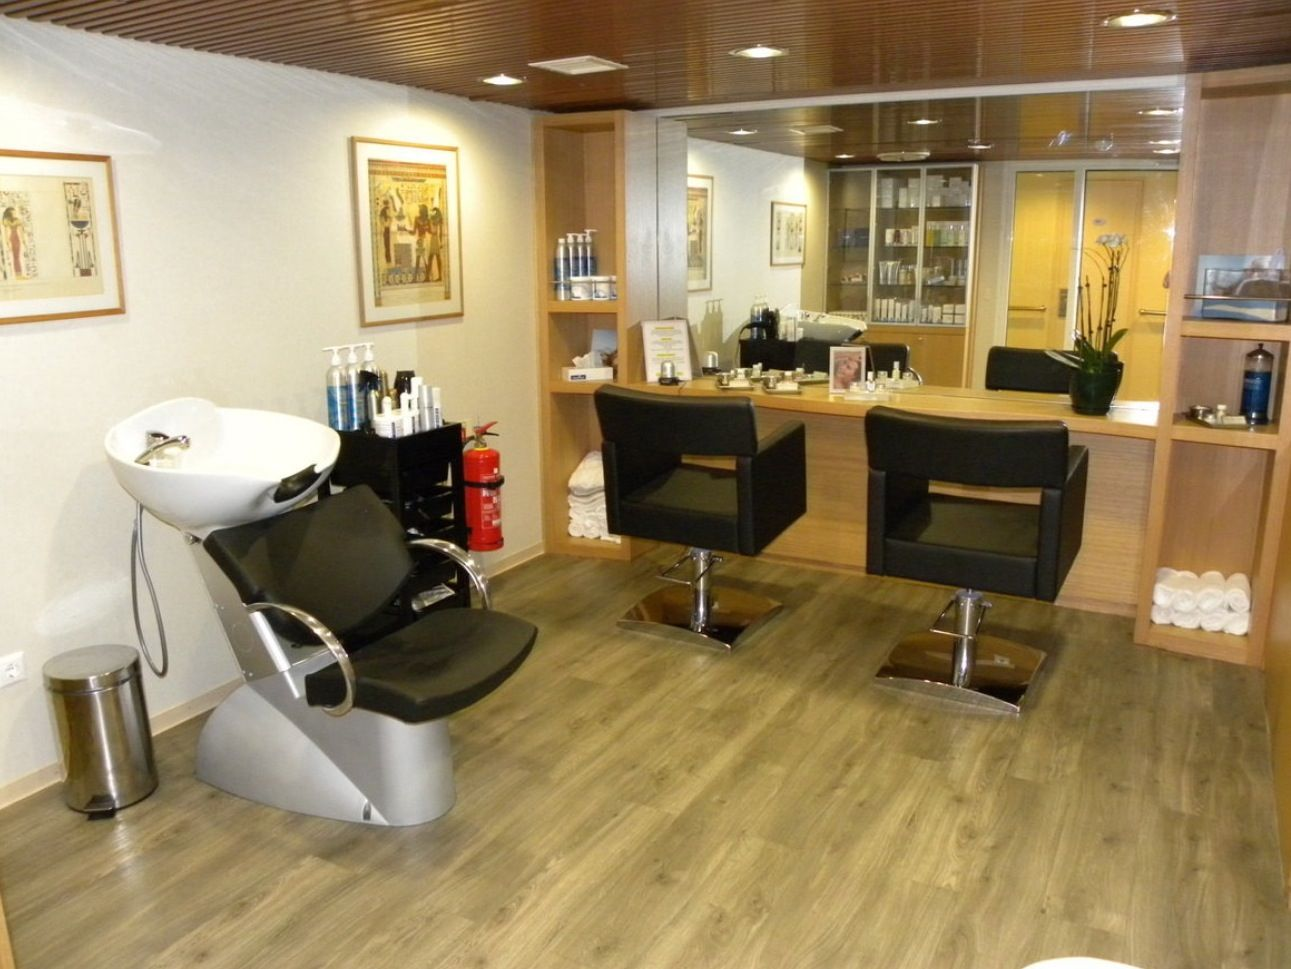 Small salon perfect want want want just for me for Interior design for salon